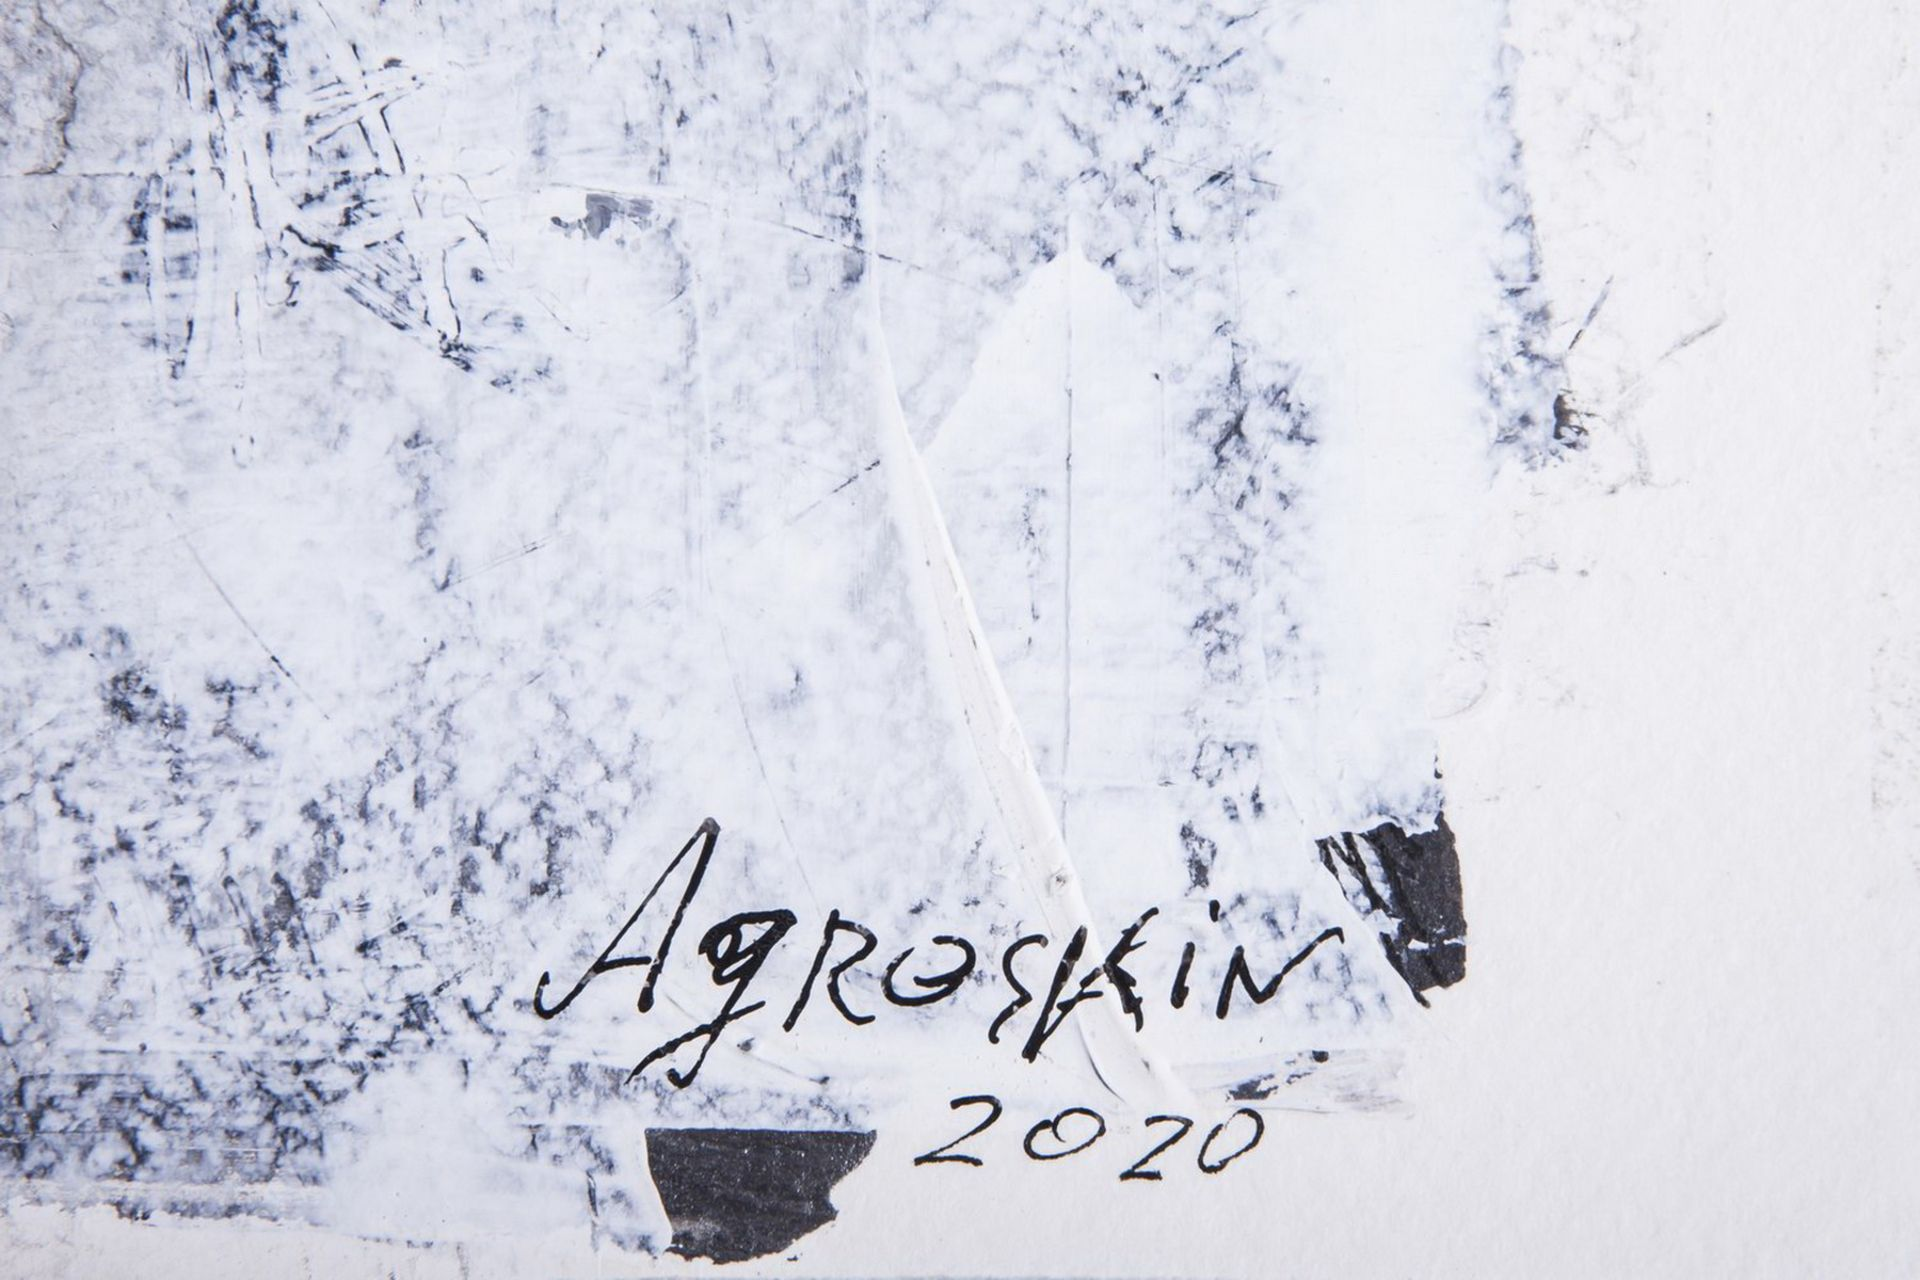 Agroskin, S.E. A scull. 2020. Paper, mixed media. 41x51 cm. <br>Signed. Sales:  Lyon &amp; Turnbull  - Bild 3 aus 3